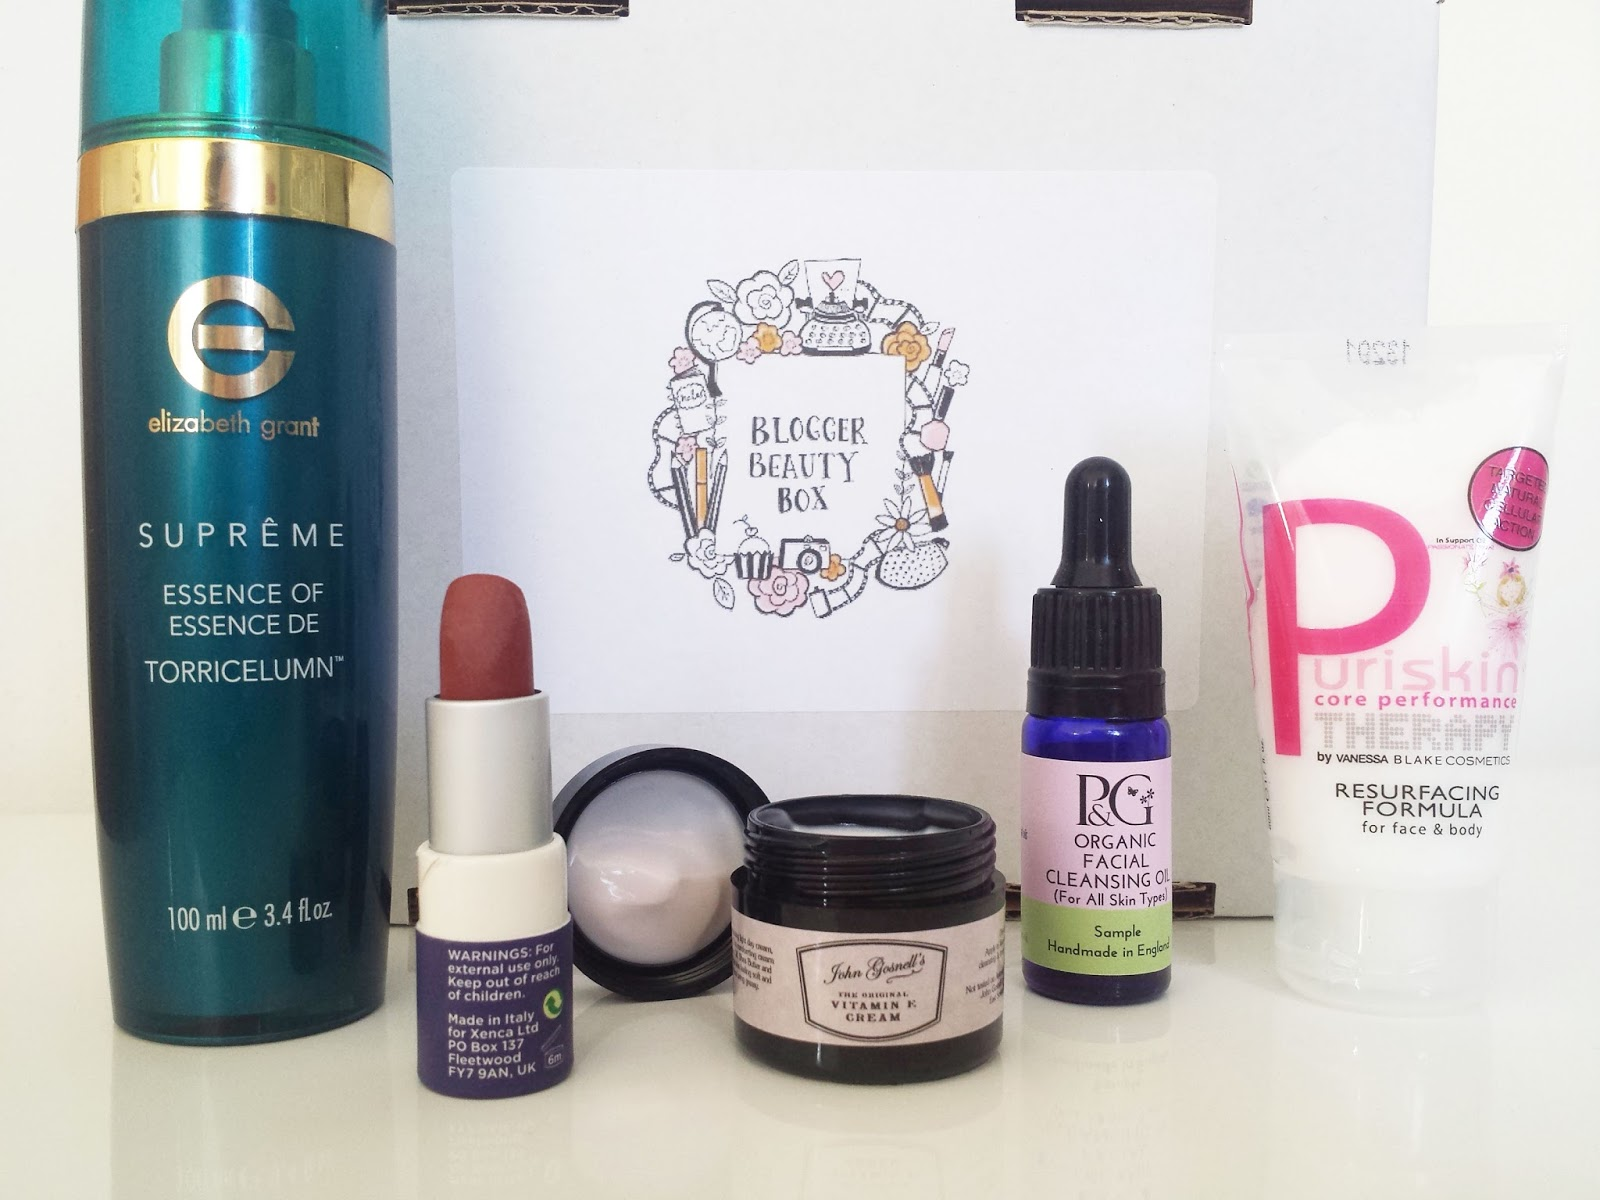 Blogger Beauty Box Makeup and Skincare